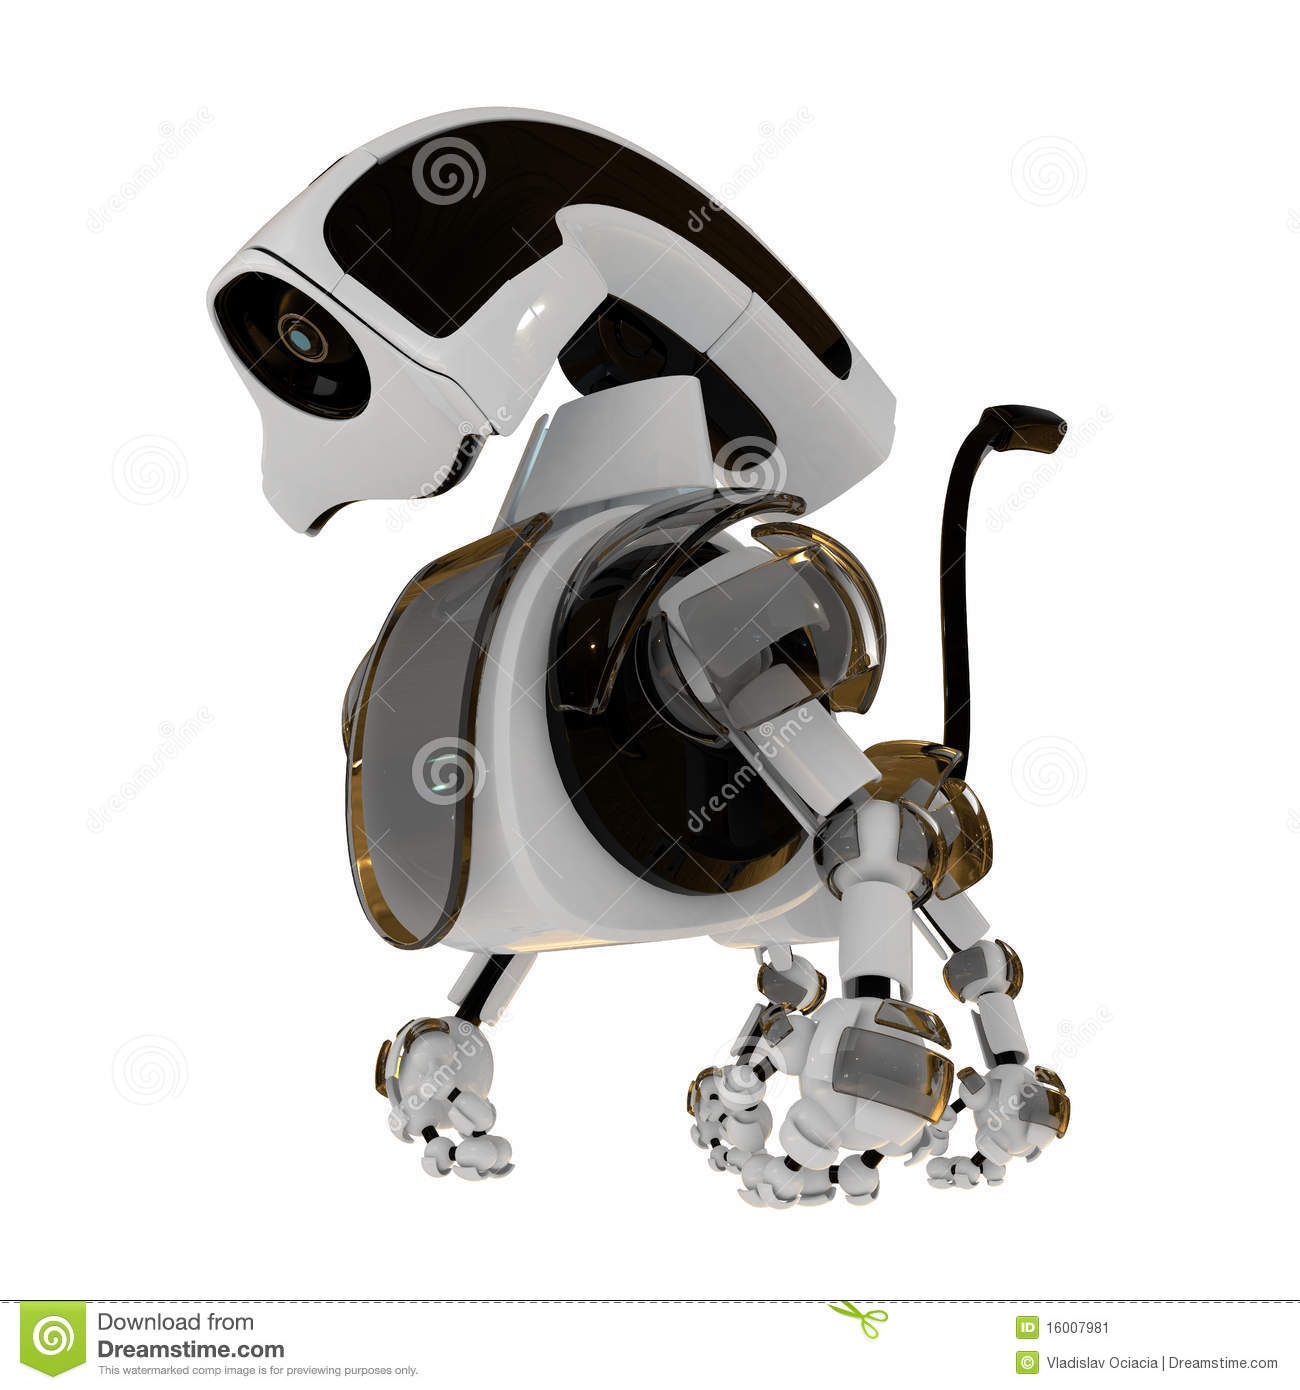 Cool Robot Toys : Cool d robotic toy stock image